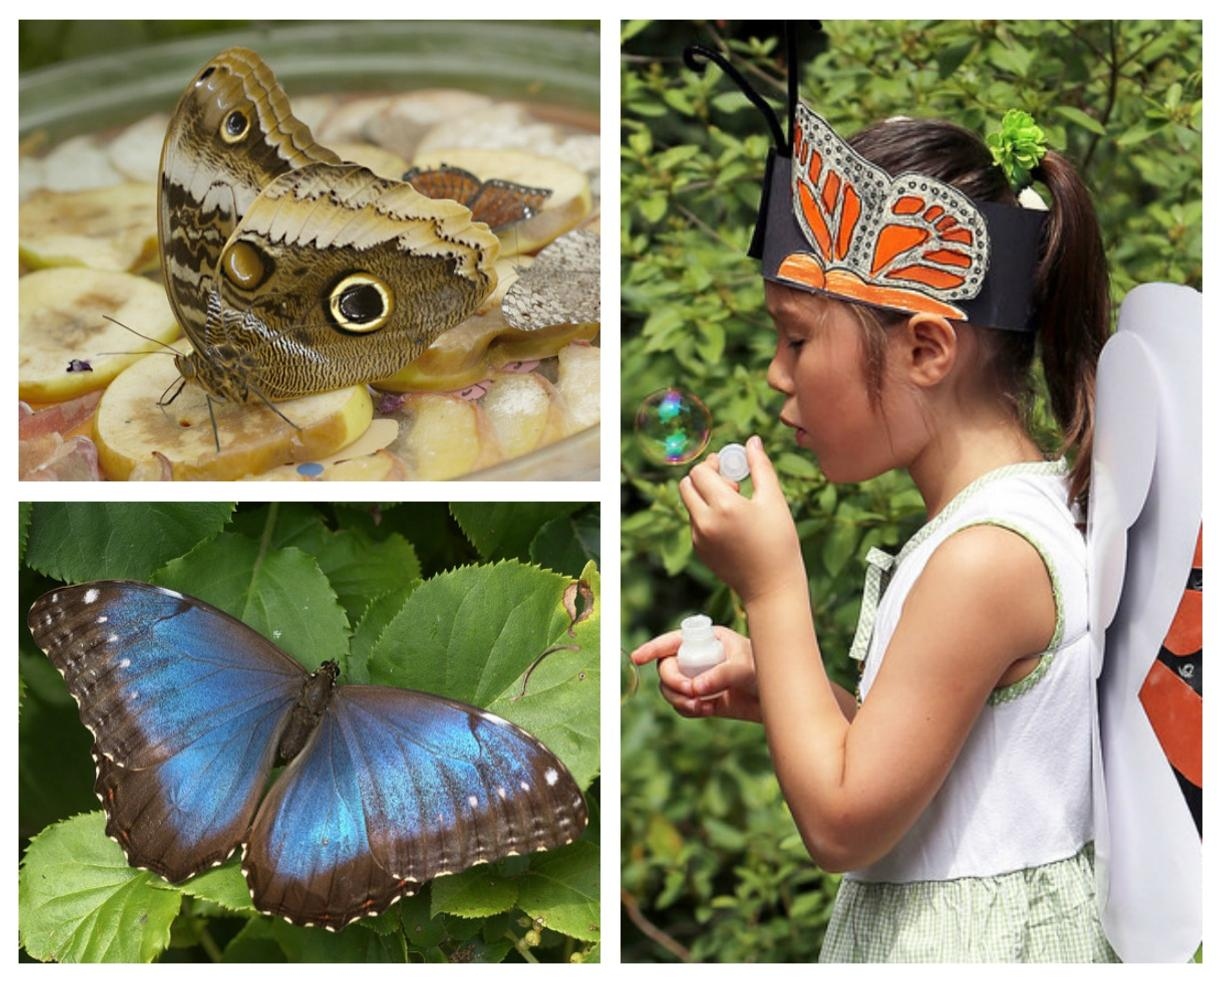 $8 for TWO Admissions to Wings of Fancy Butterfly & Caterpillar Exhibit beginning July 4, 2017 - Brookside Gardens in Wheaton ($16 Value - Up to 50% Off)